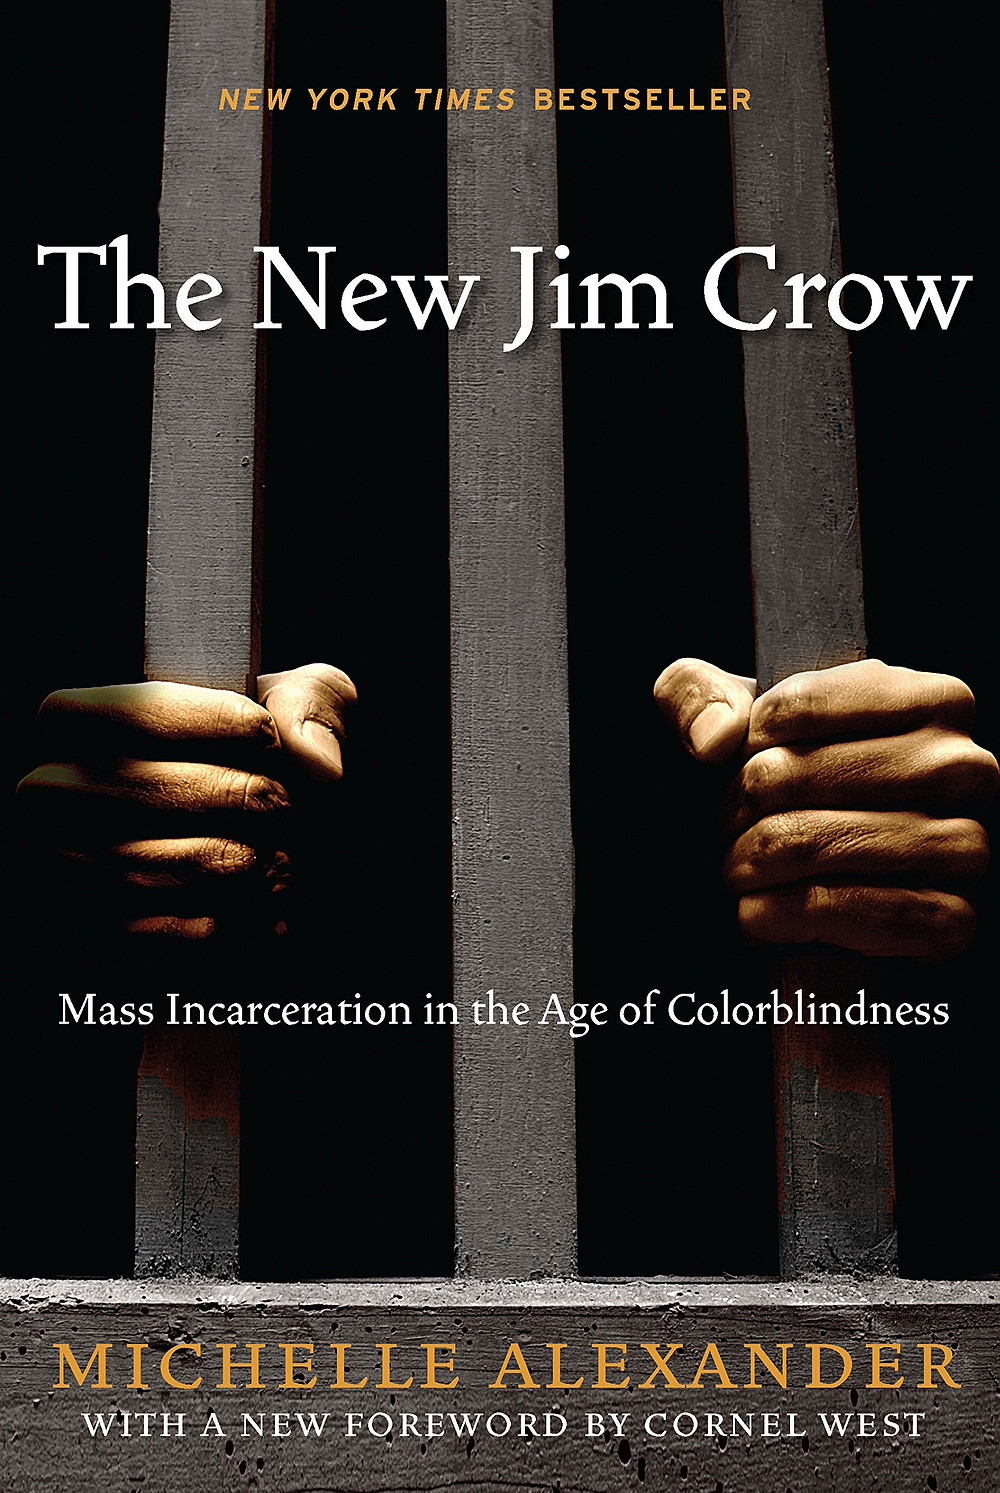 The New Jim Crow: Mass Incarceration in the Age of Colorblindness by Michelle Alexander : the book slut book reviews